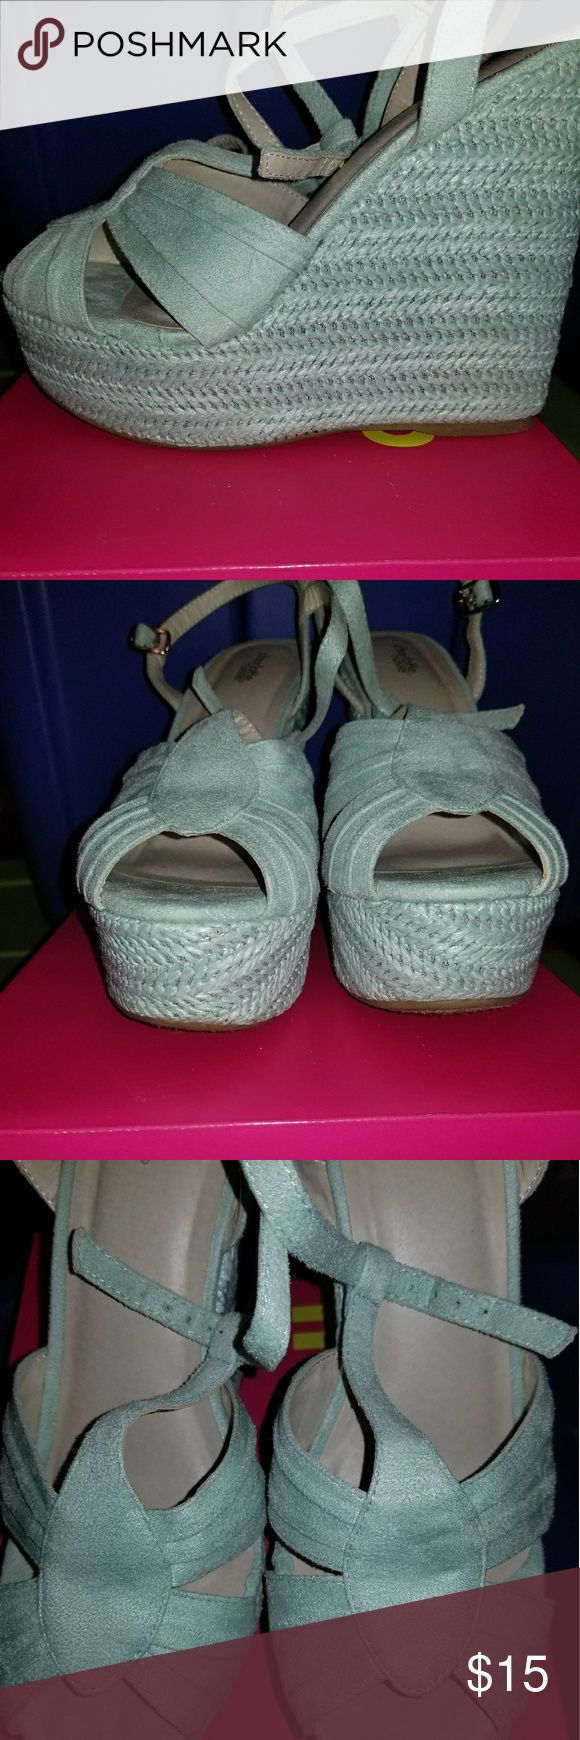 Mint wedges Mint wedges Worn 1 time  Kept in original box Charlotte Russe Shoes Wedges